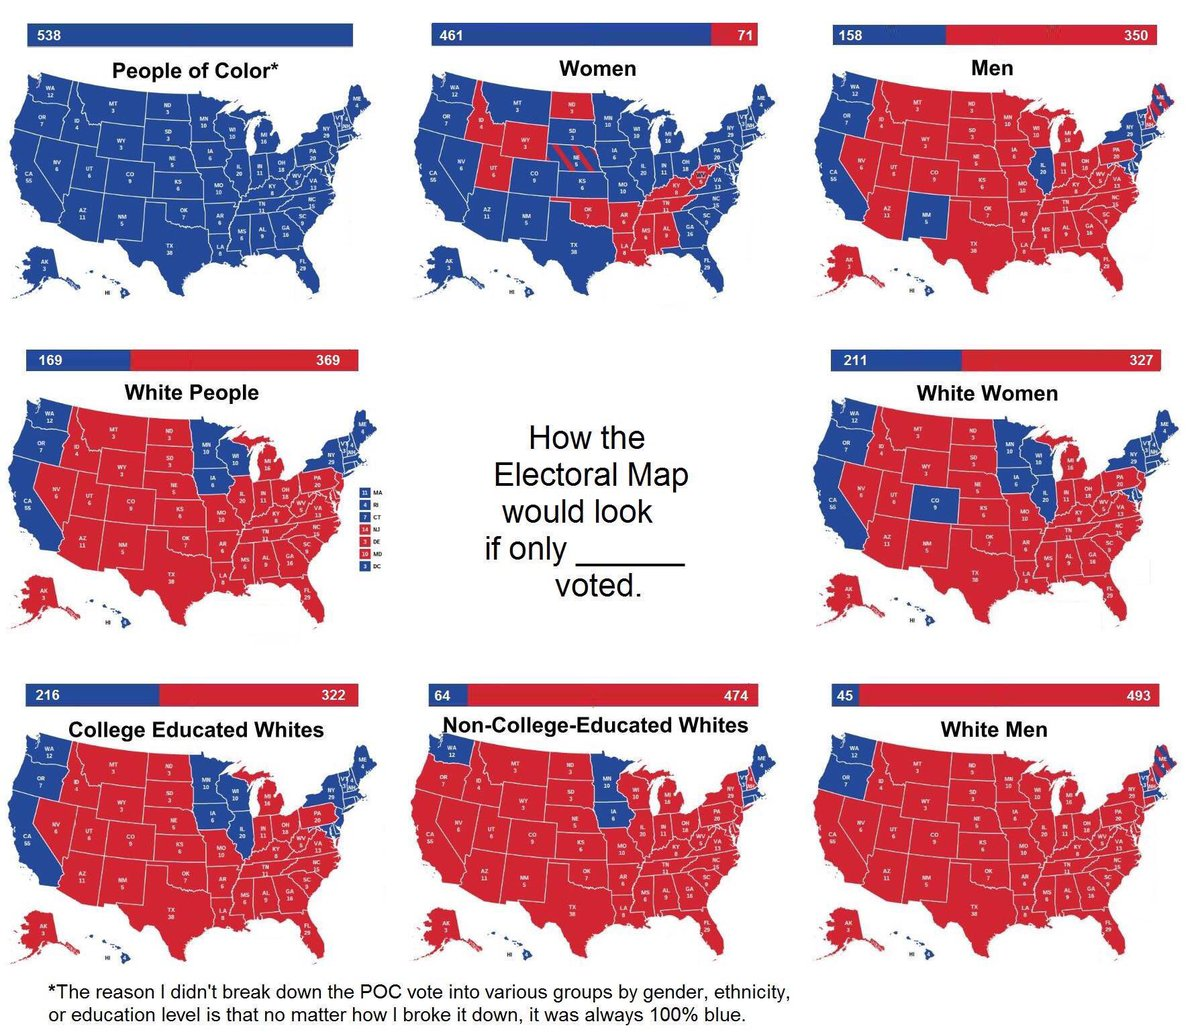 an analysis of the demographics the voter turnout the electoral college and the fundamentals in rela Voter turnout demographics faq redistricting the united states elections project is an information source for the united states electoral electoral laws.